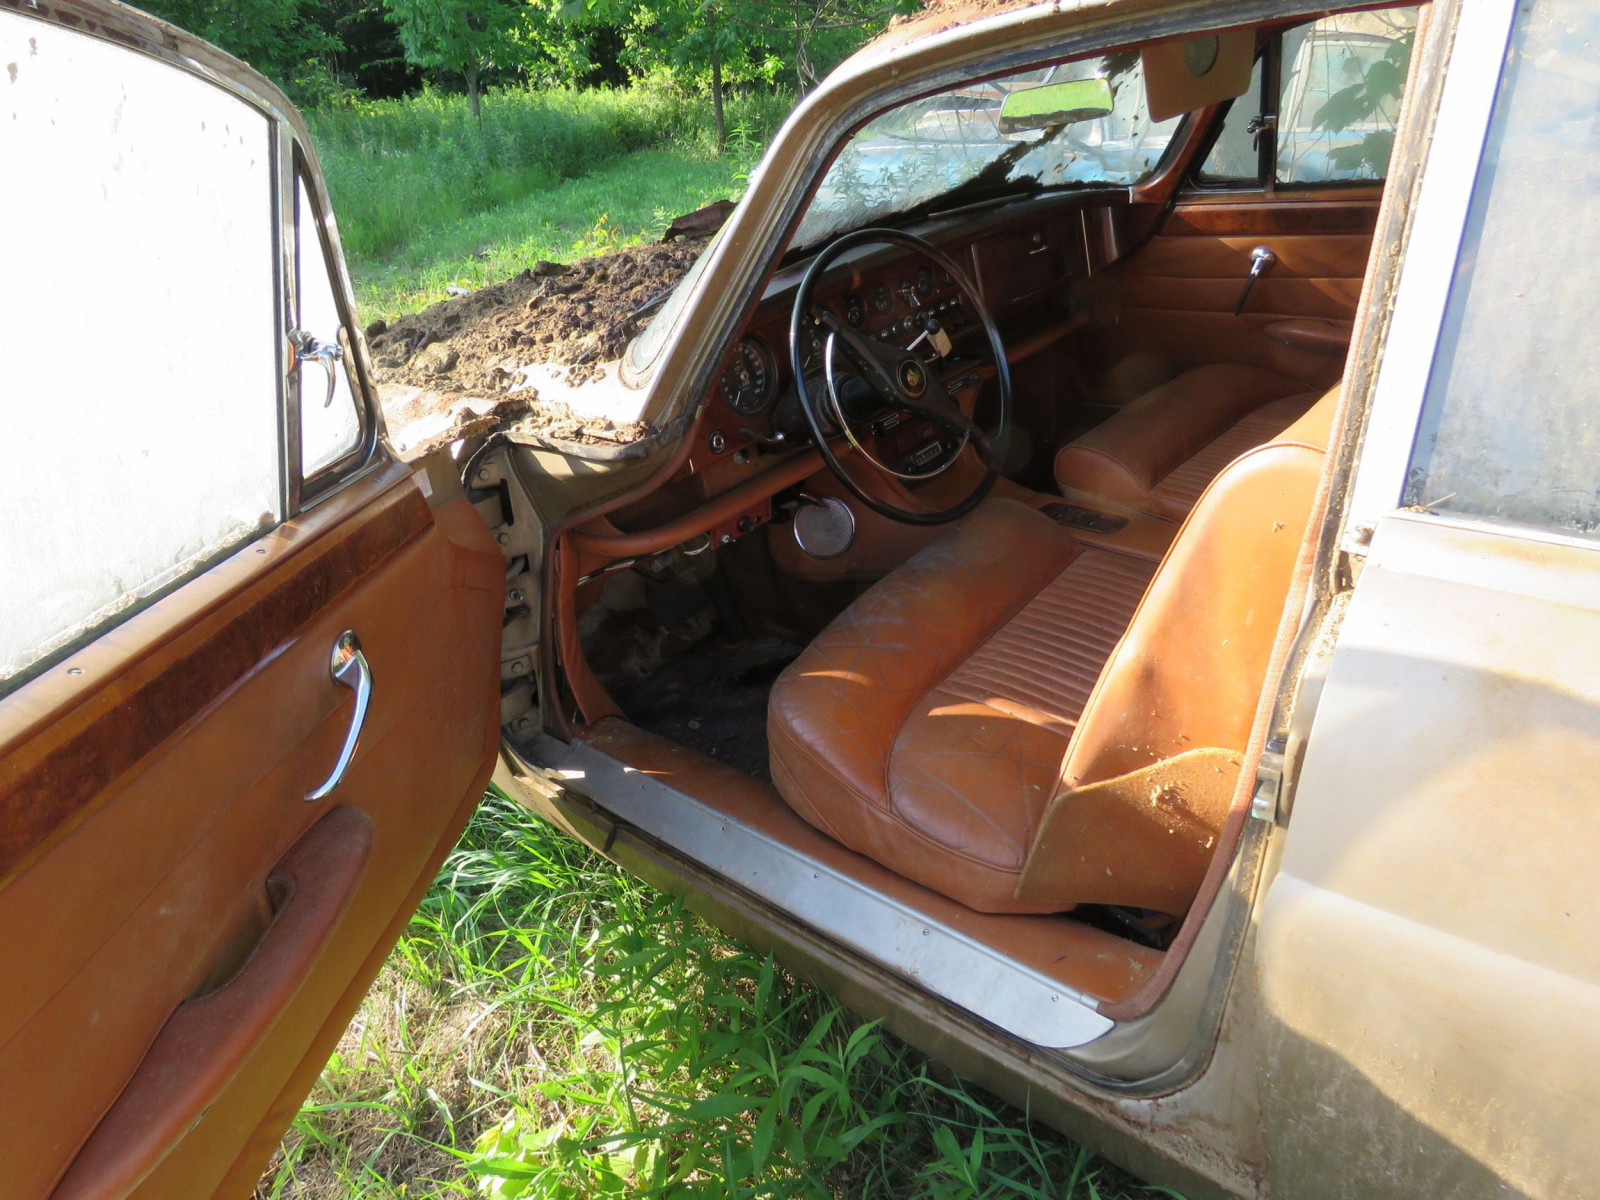 1966 Jaguar 4.2 4dr Sedan - Image 4